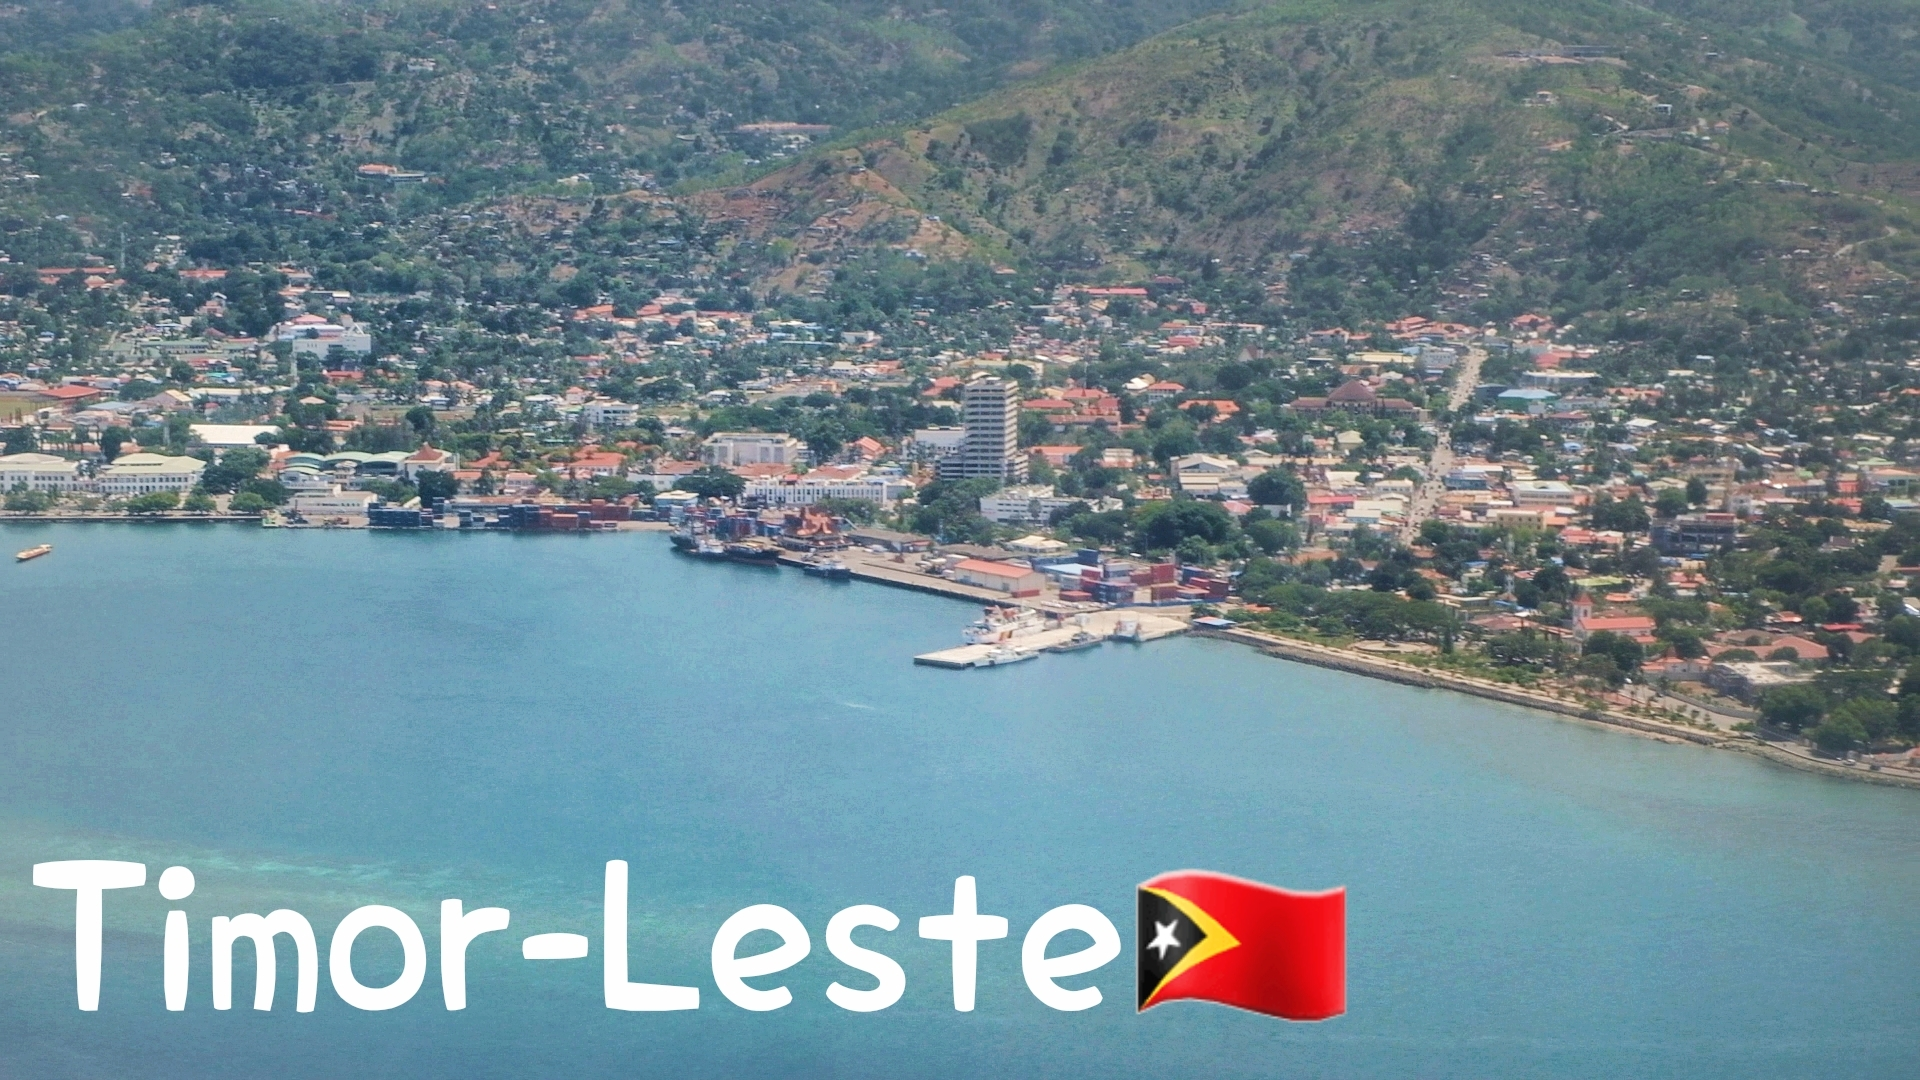 A First Sight of Timor Leste From Above   Kapas Los! 🇹🇱